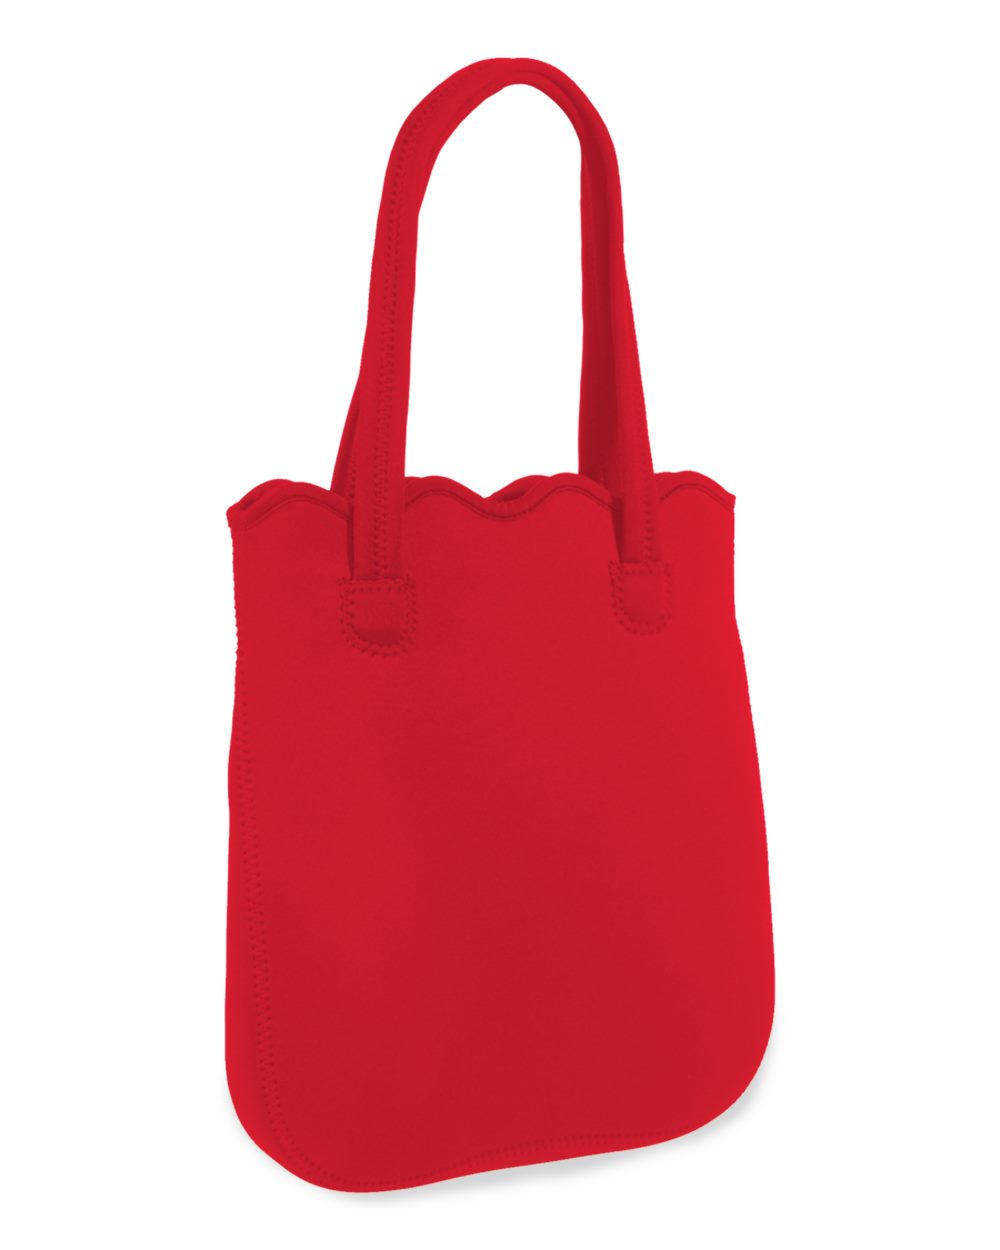 Valubag VB1022 - Neoprene 6L Tote Bag